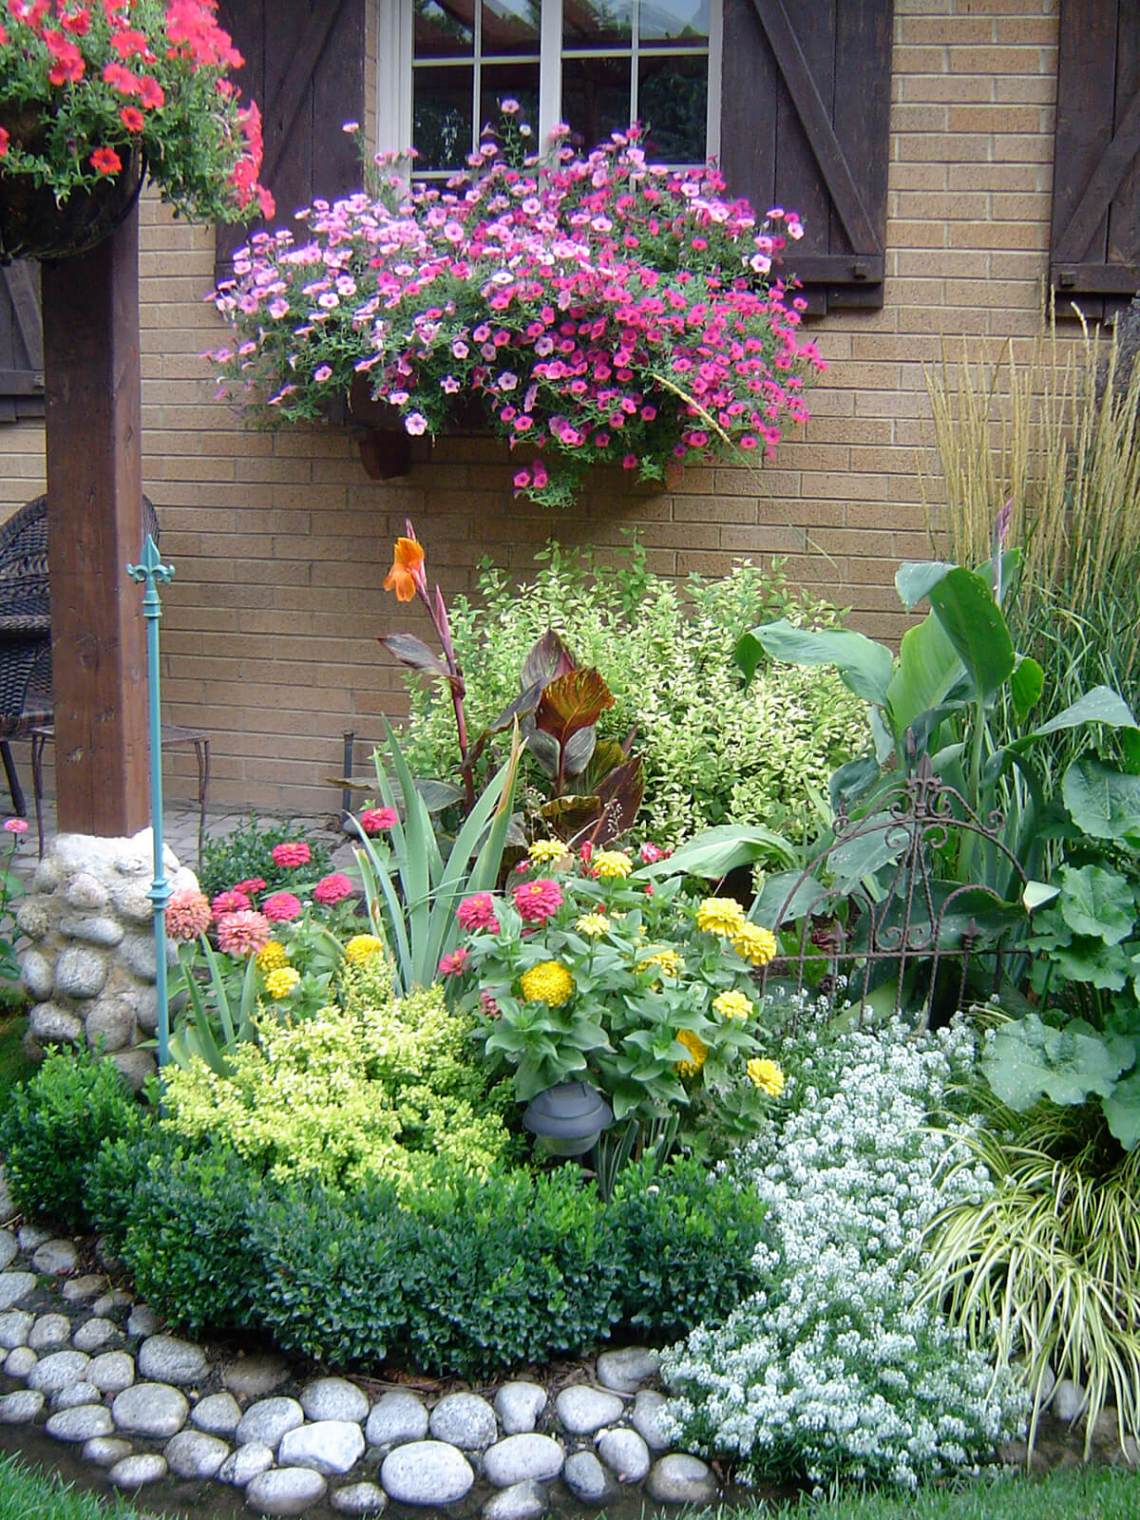 27 Best Flower Bed Ideas Decorations And Designs For 2021